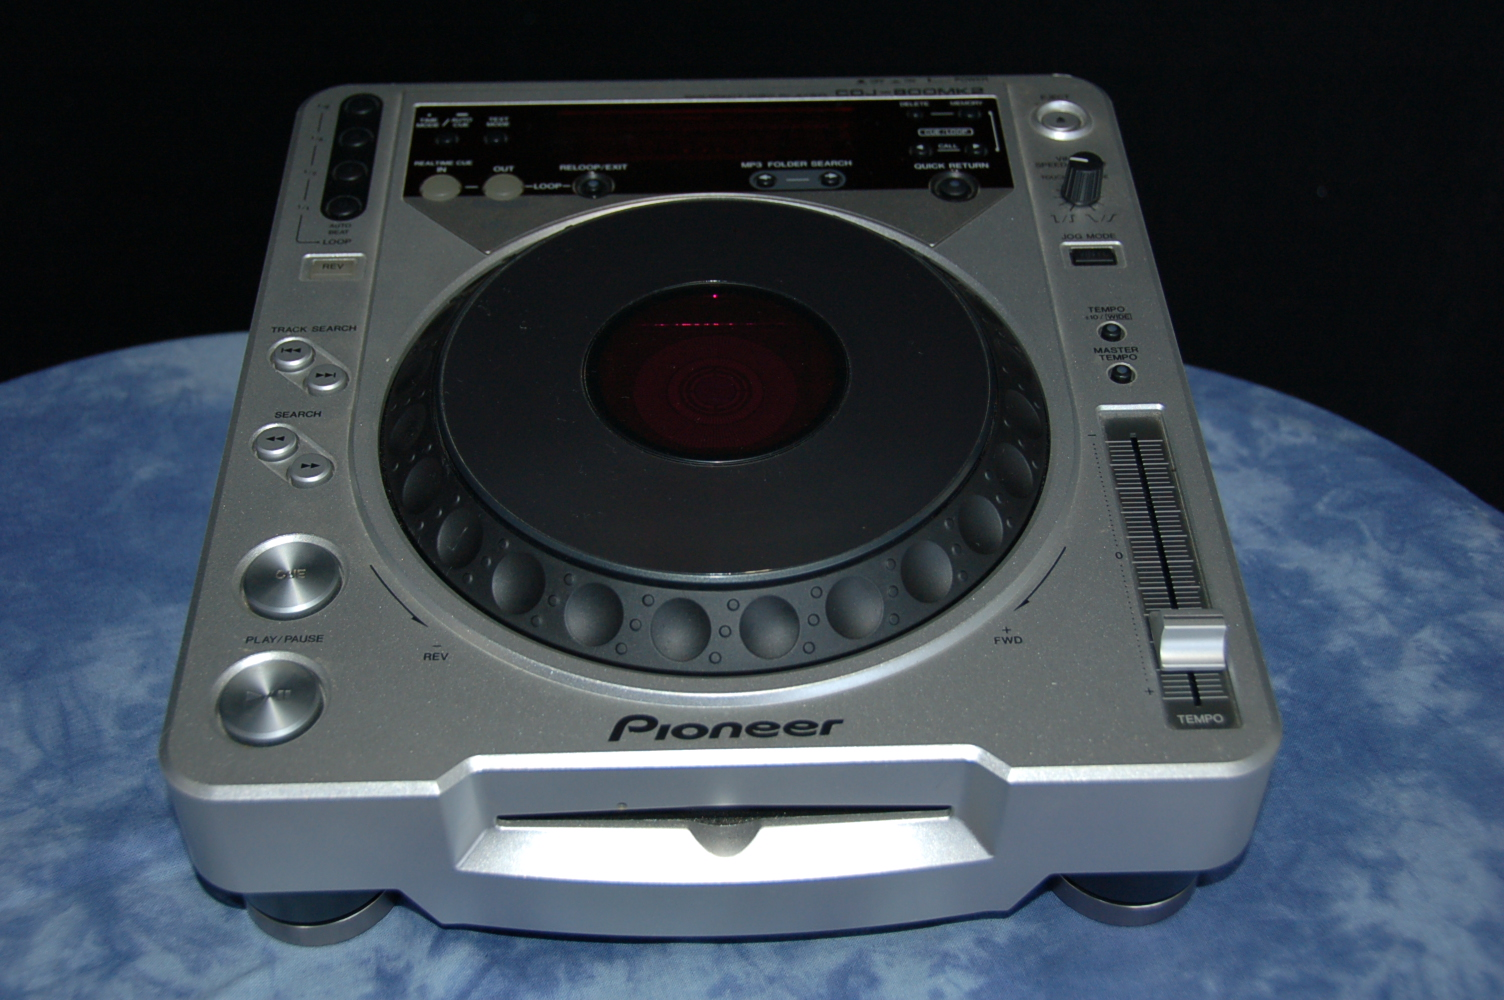 Pioneer CDJ 800 DJ Turntable Rental